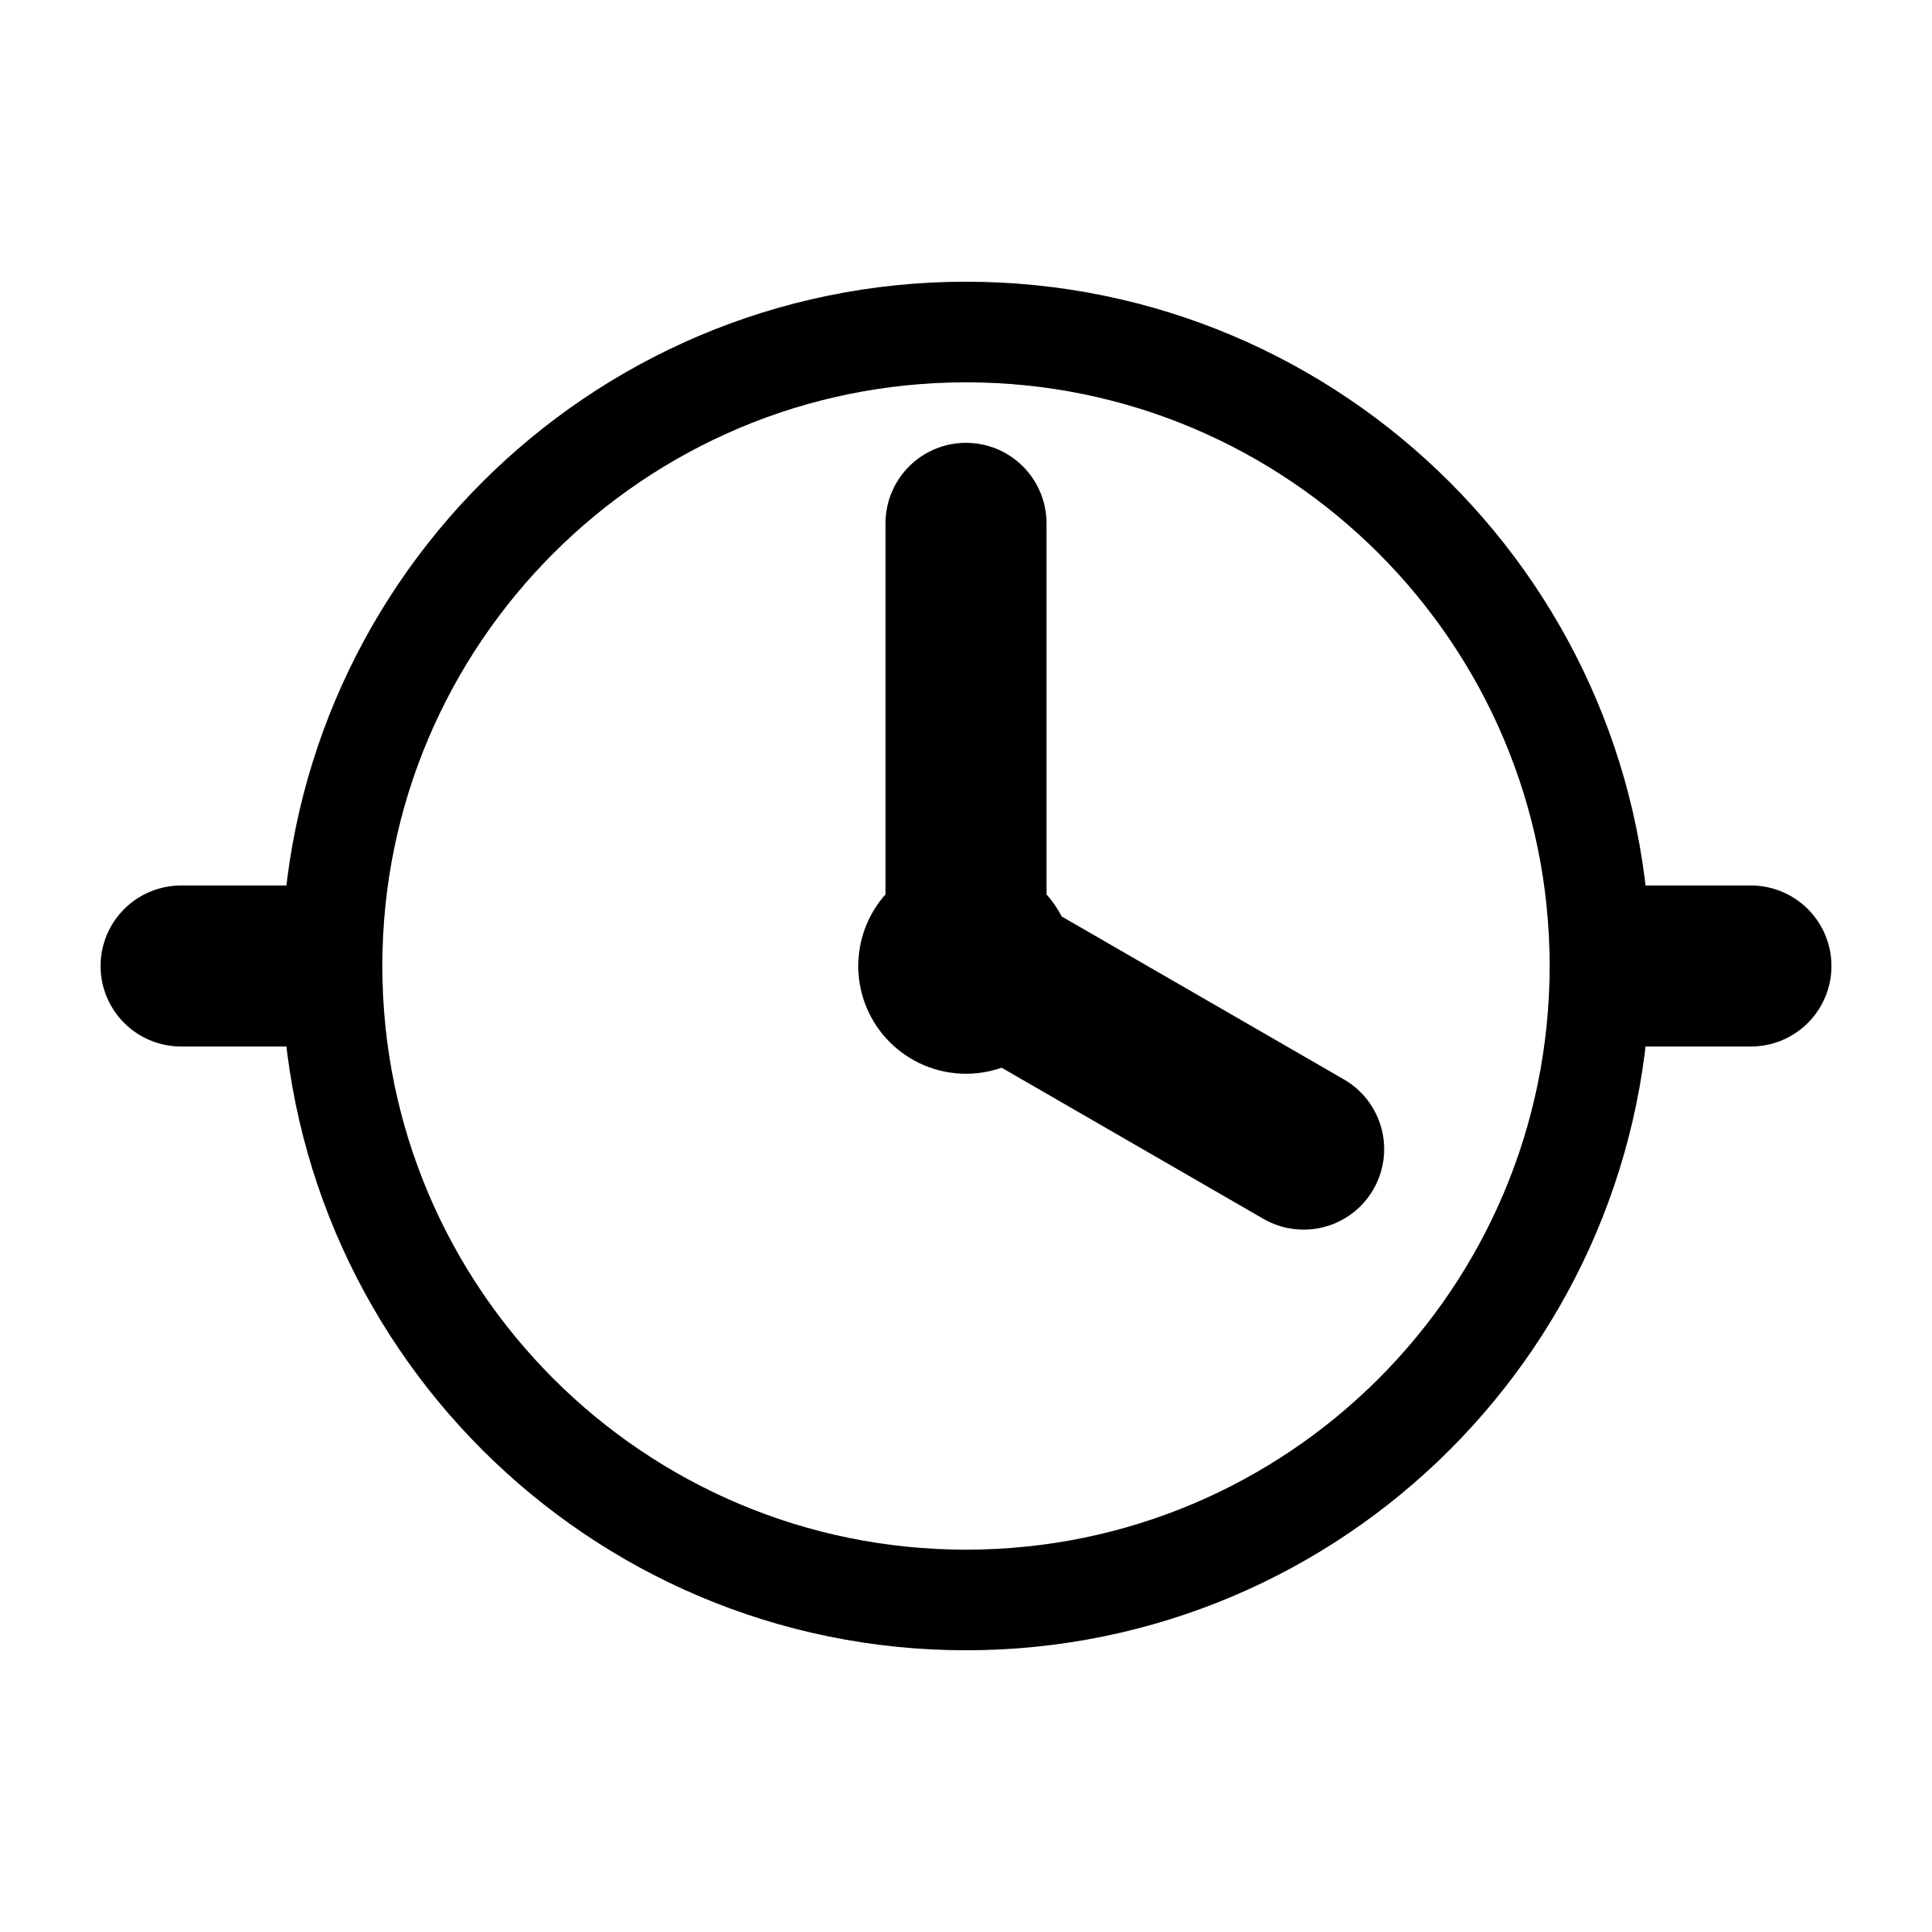 Timeline clipart black and white. Mono big image png